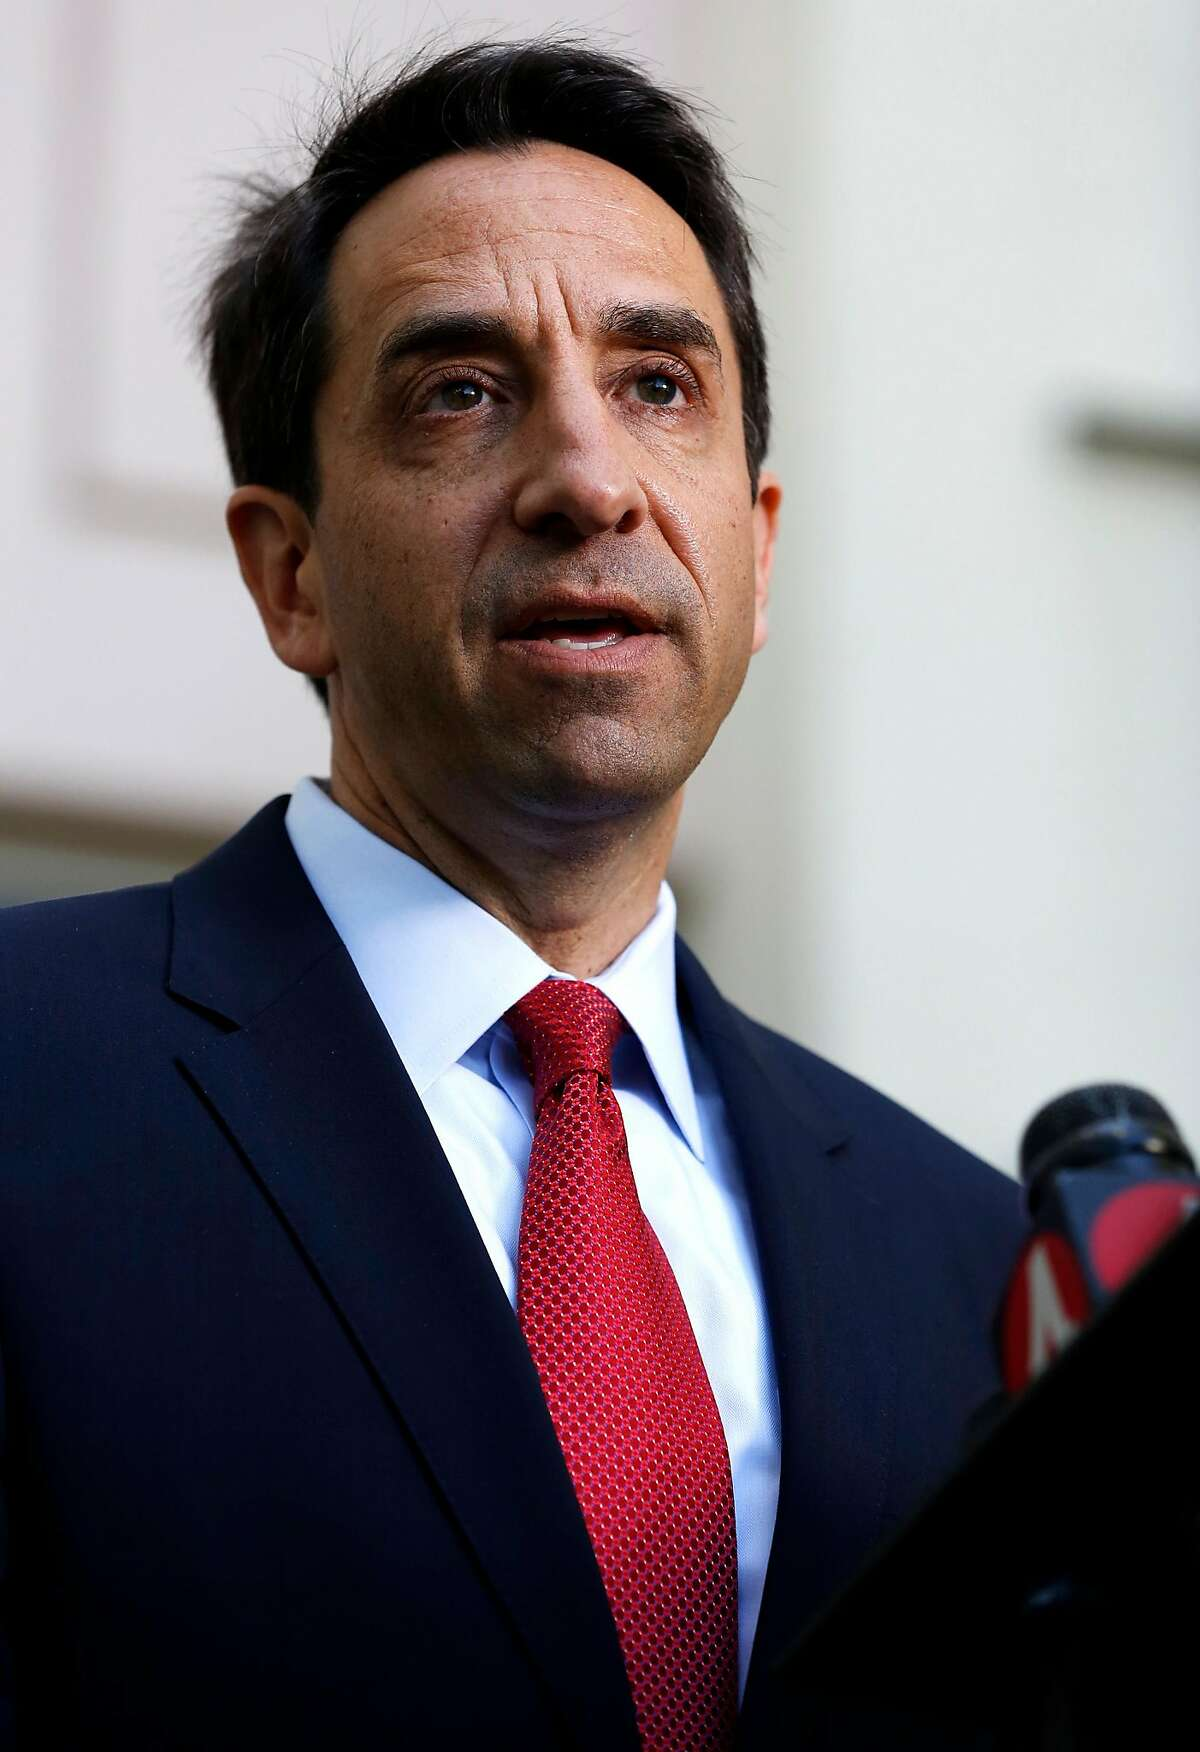 District attorney Jeff Rosen speaks to members of the media during a news conference outside Santa Clara County Superior Court in Palo Alto, California, on Wednesday, June 22, 2016.